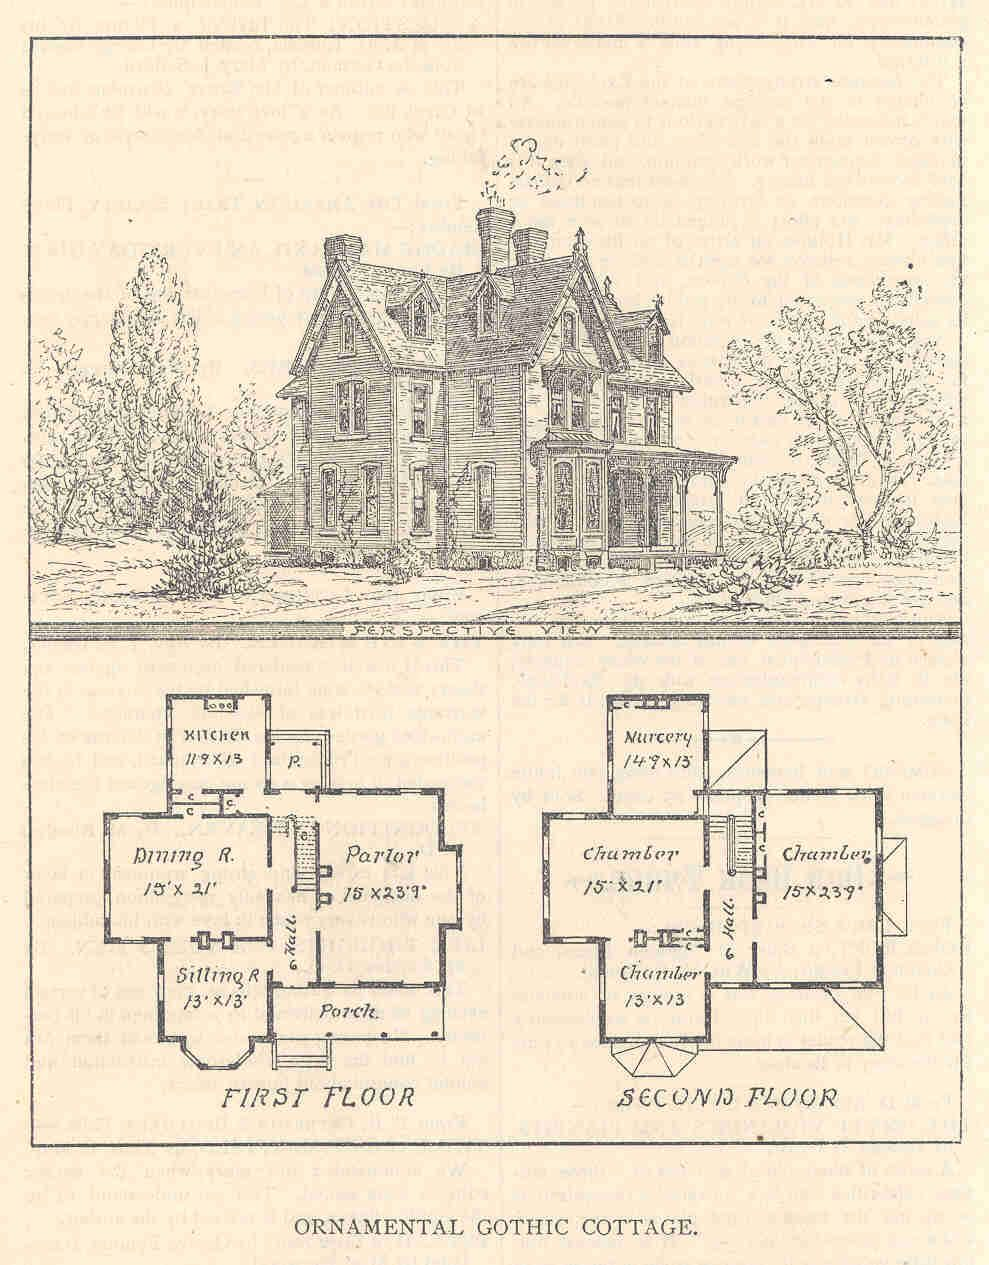 Gothic house plans with turrets the sims 4 floorplans for Victorian house plans with turrets